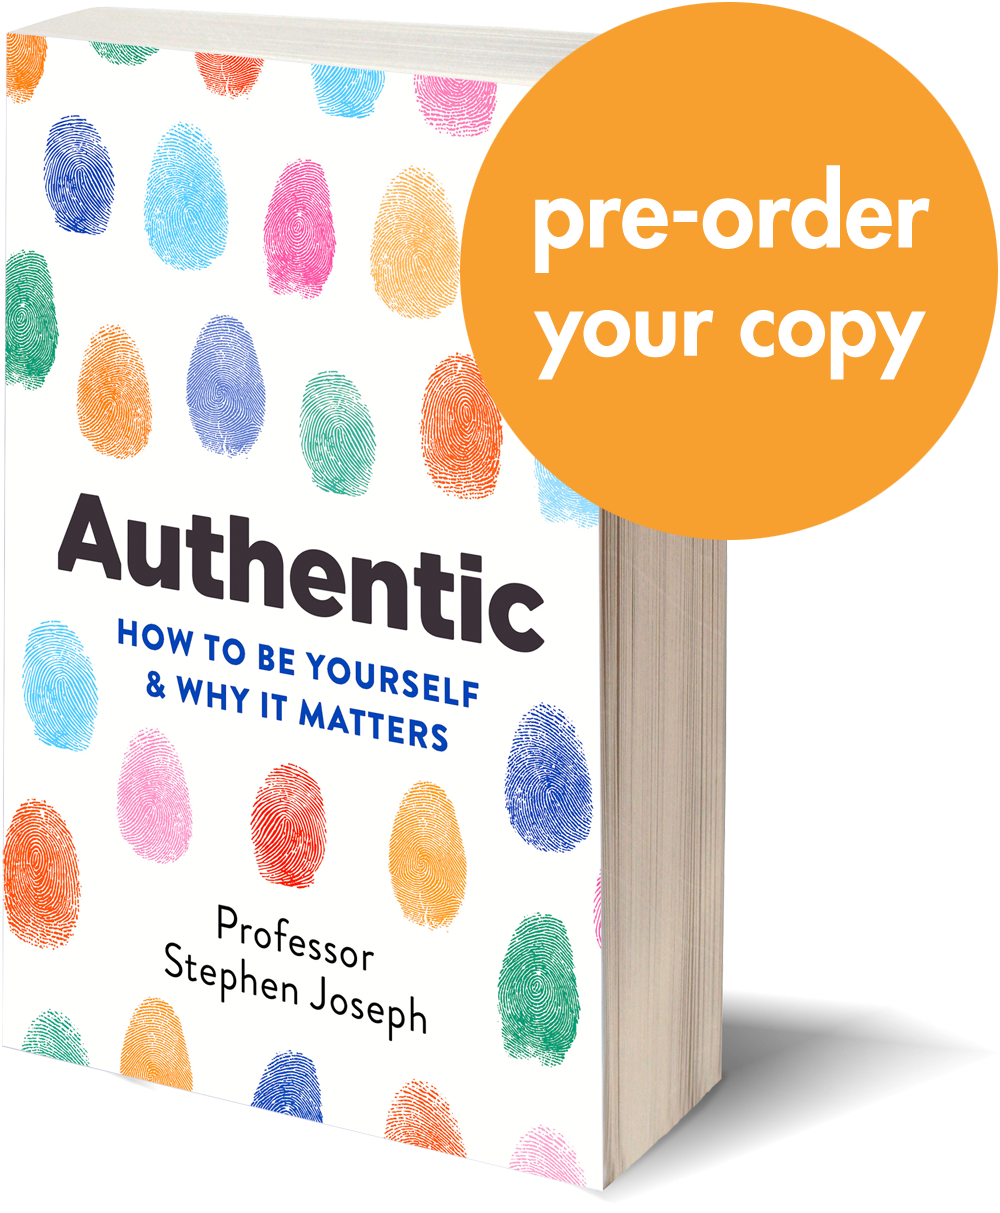 Authentic by Professor Stephen Joseph